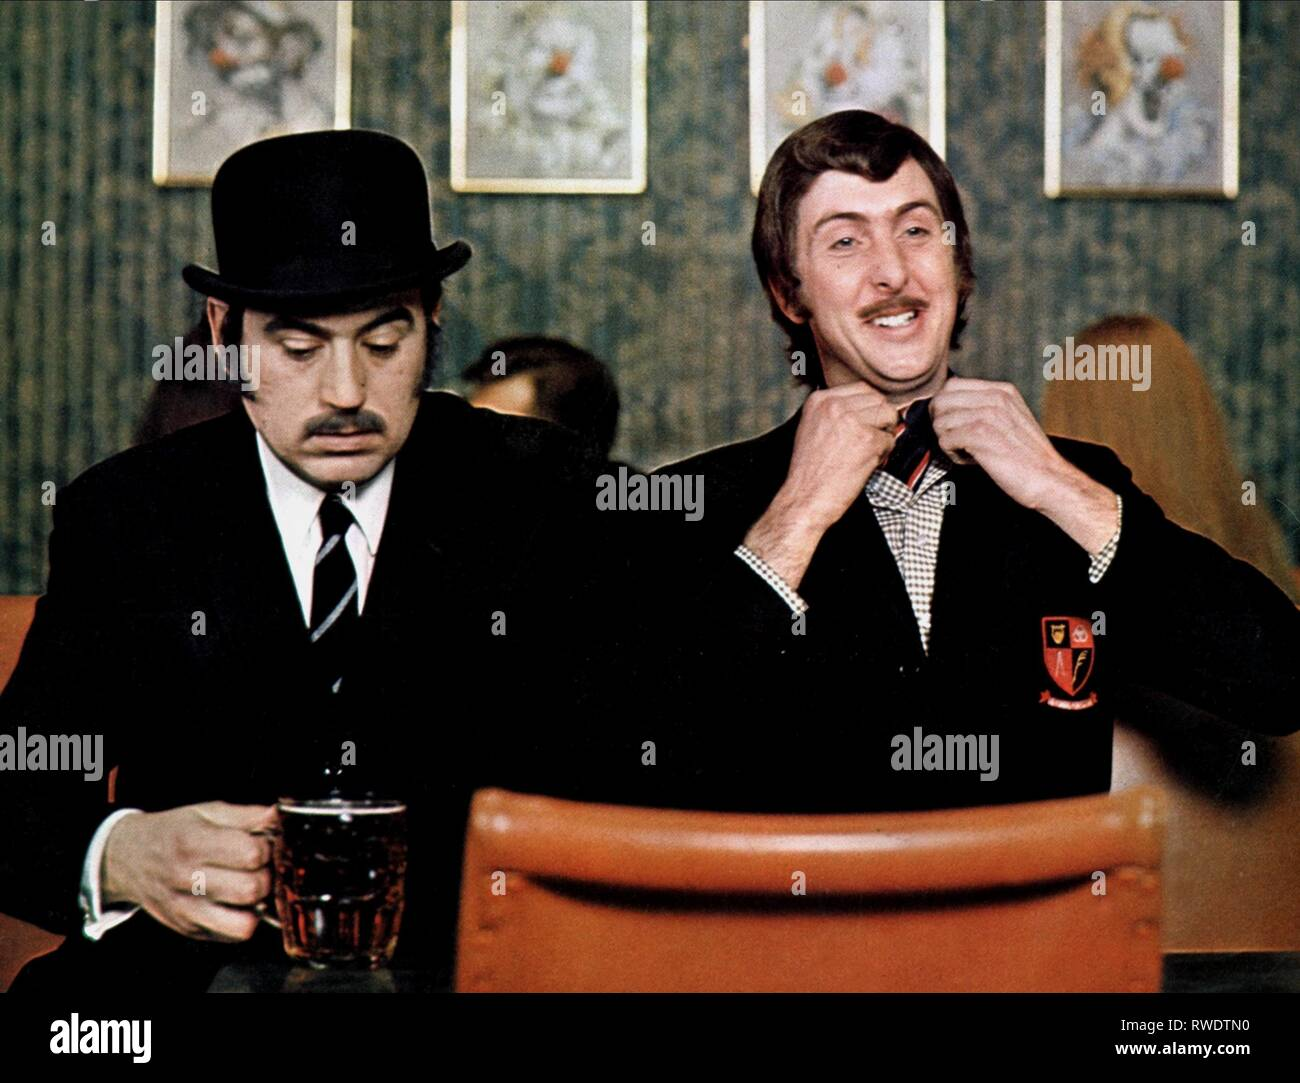 TERRY JONES,ERIC IDLE, AND NOW FOR SOMETHING COMPLETELY DIFFERENT, 1971 - Stock Image